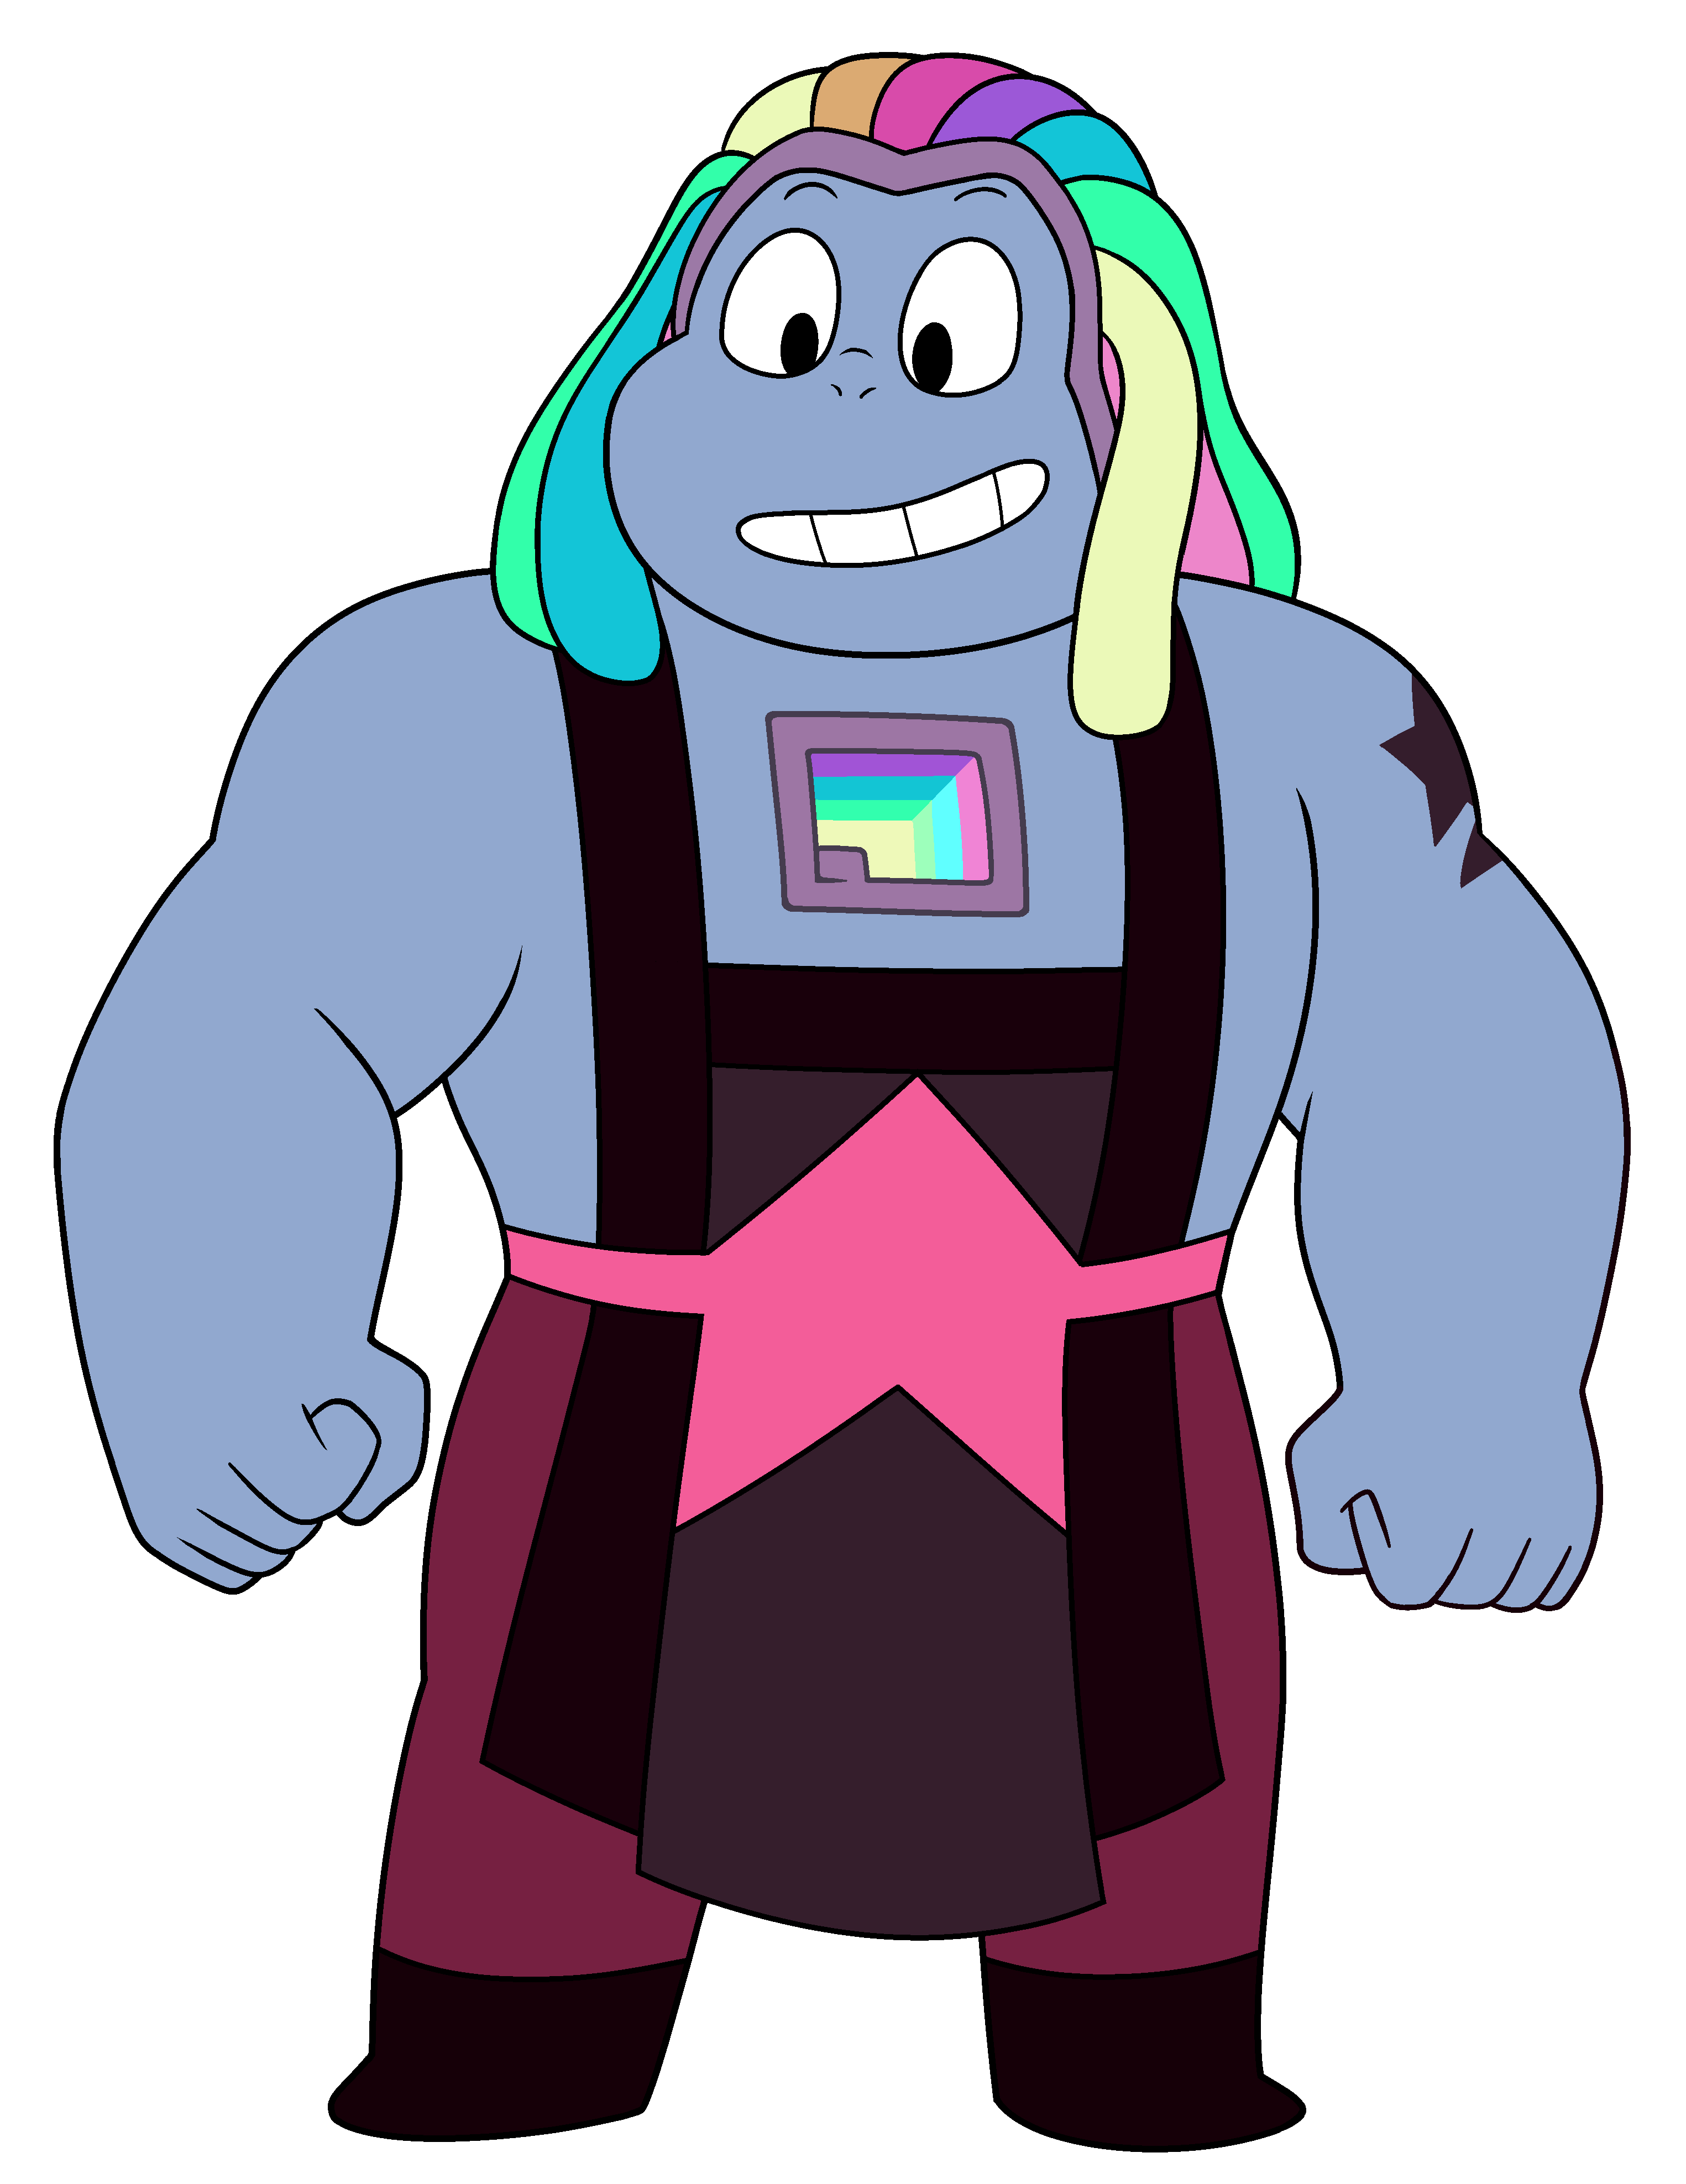 Respect clipart polite. Bismuth steven universe respectthreads